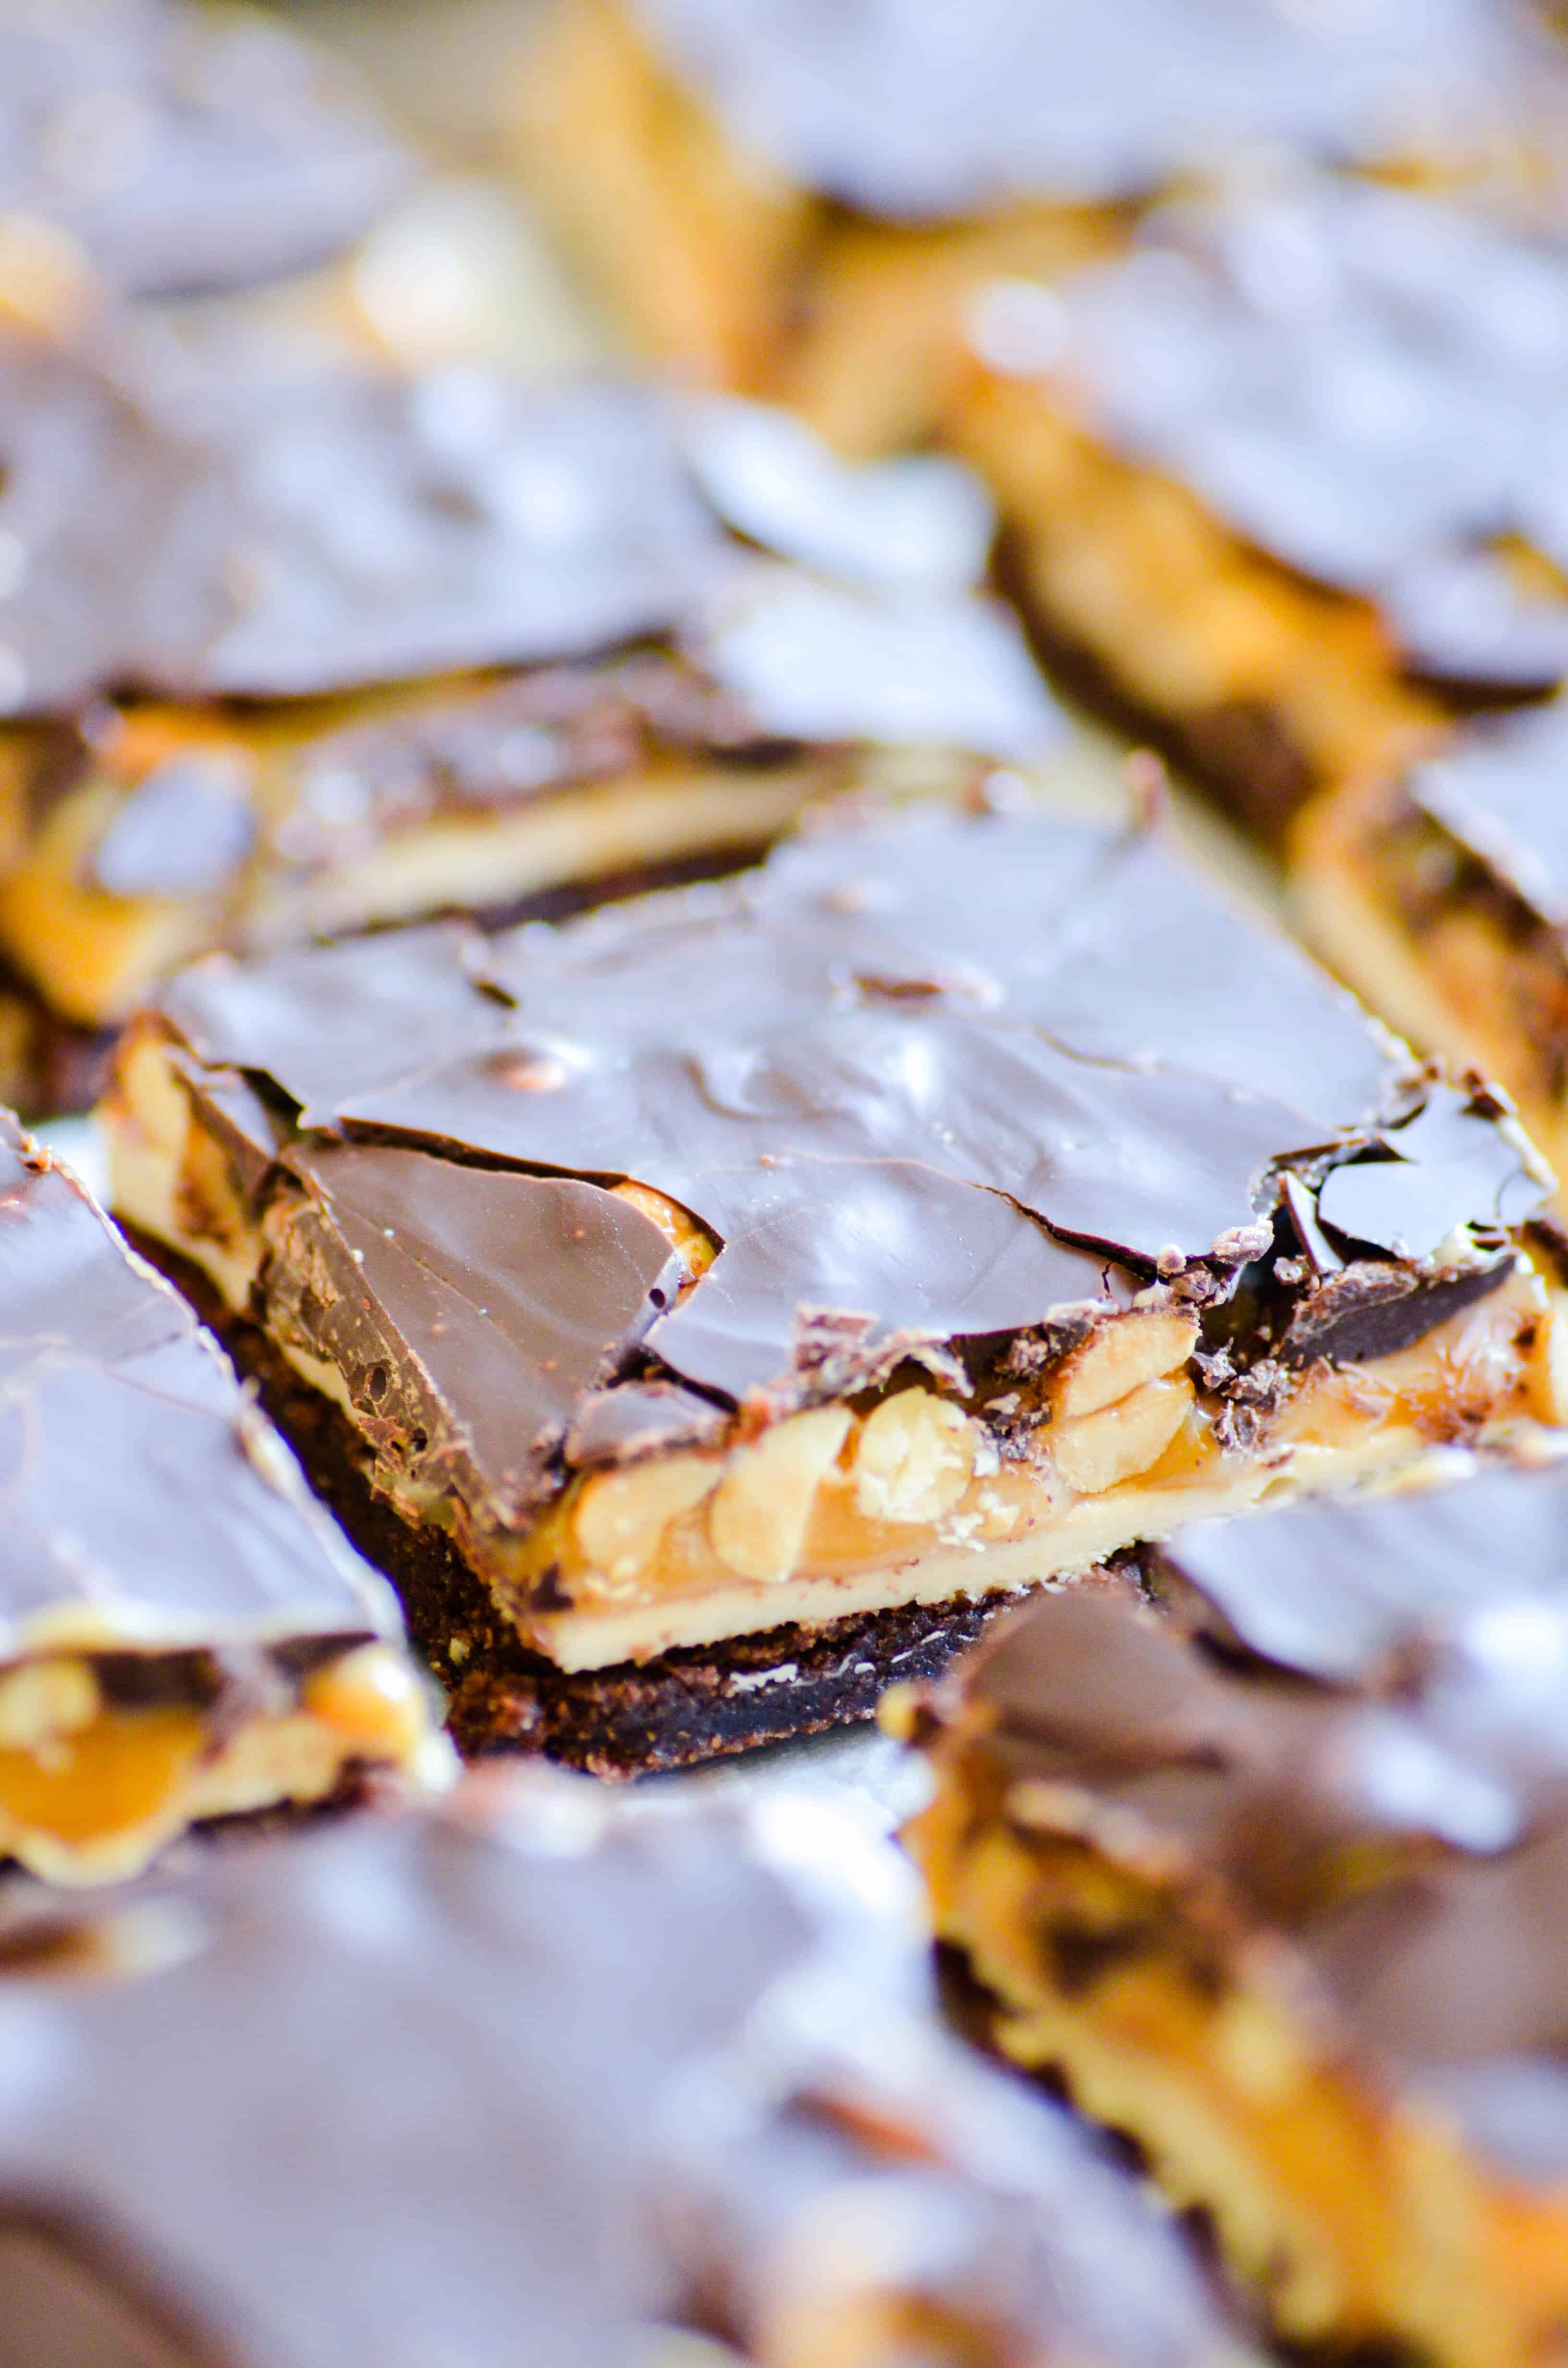 Rich and fudgy brownies masquerading as Snickers Bars.